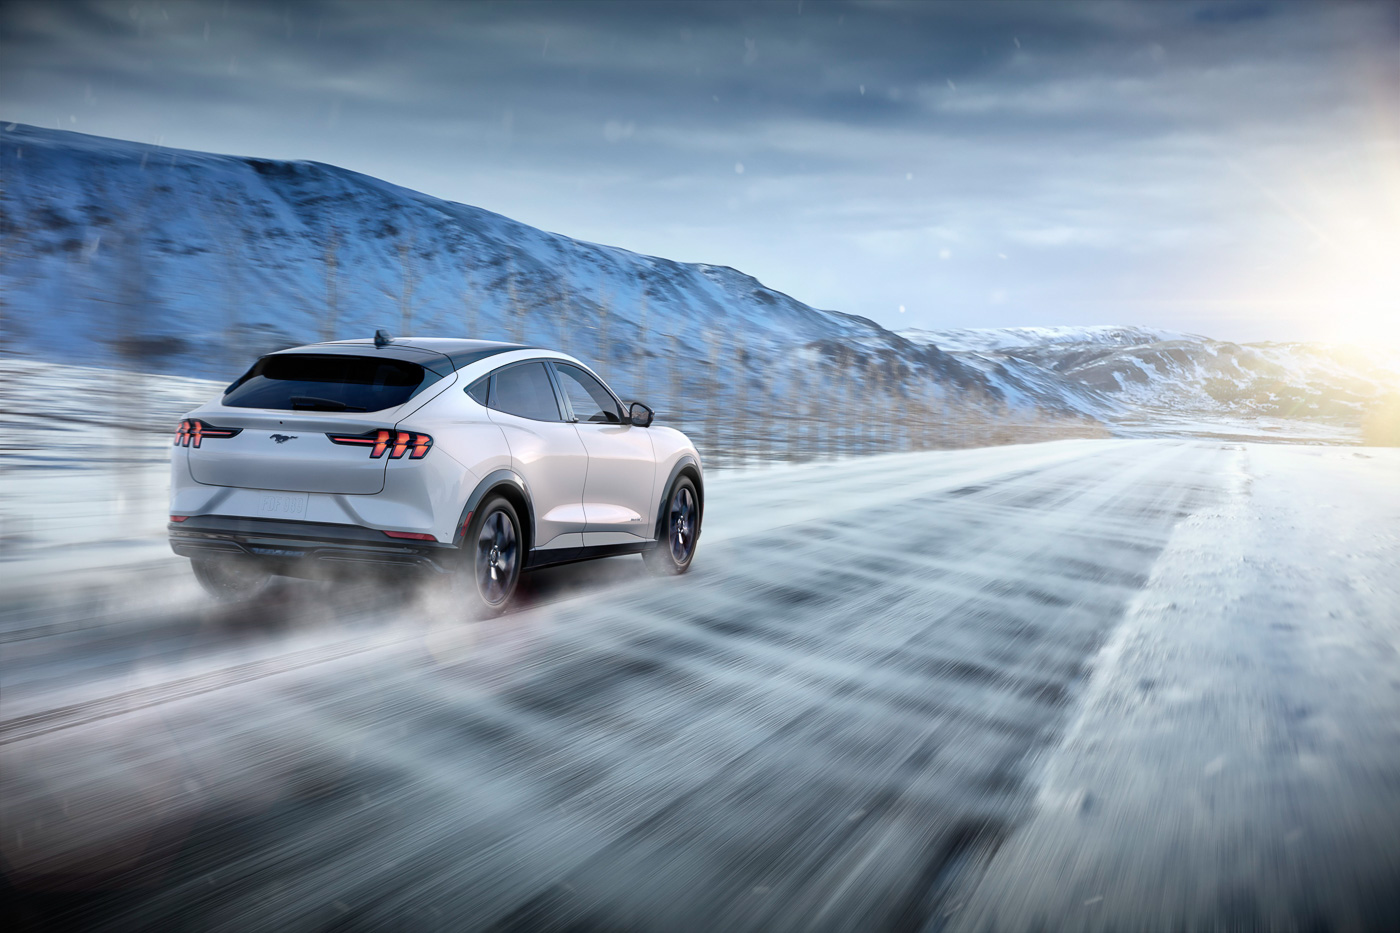 2021-Mach-E-Mustang-Ford-Electric-SUV--18.jpg